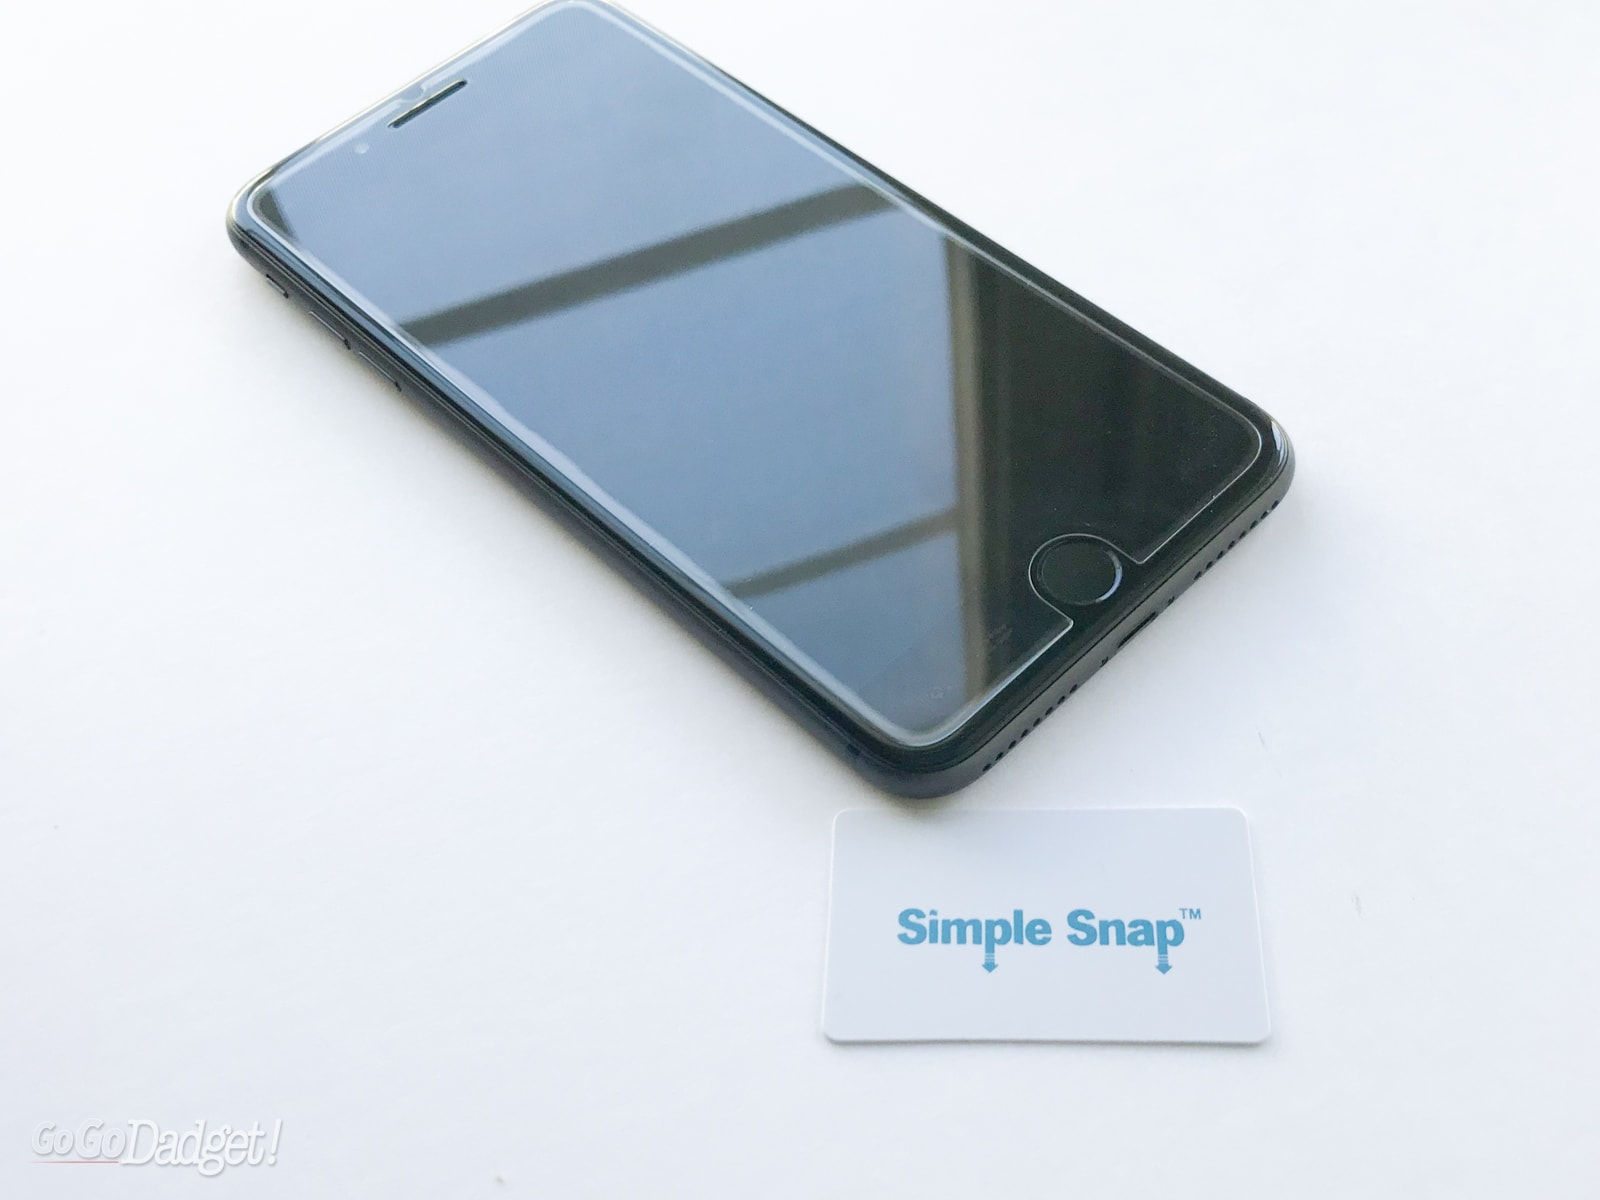 Iphone 8 Plus Simple Snap Screen Protector Quick Review